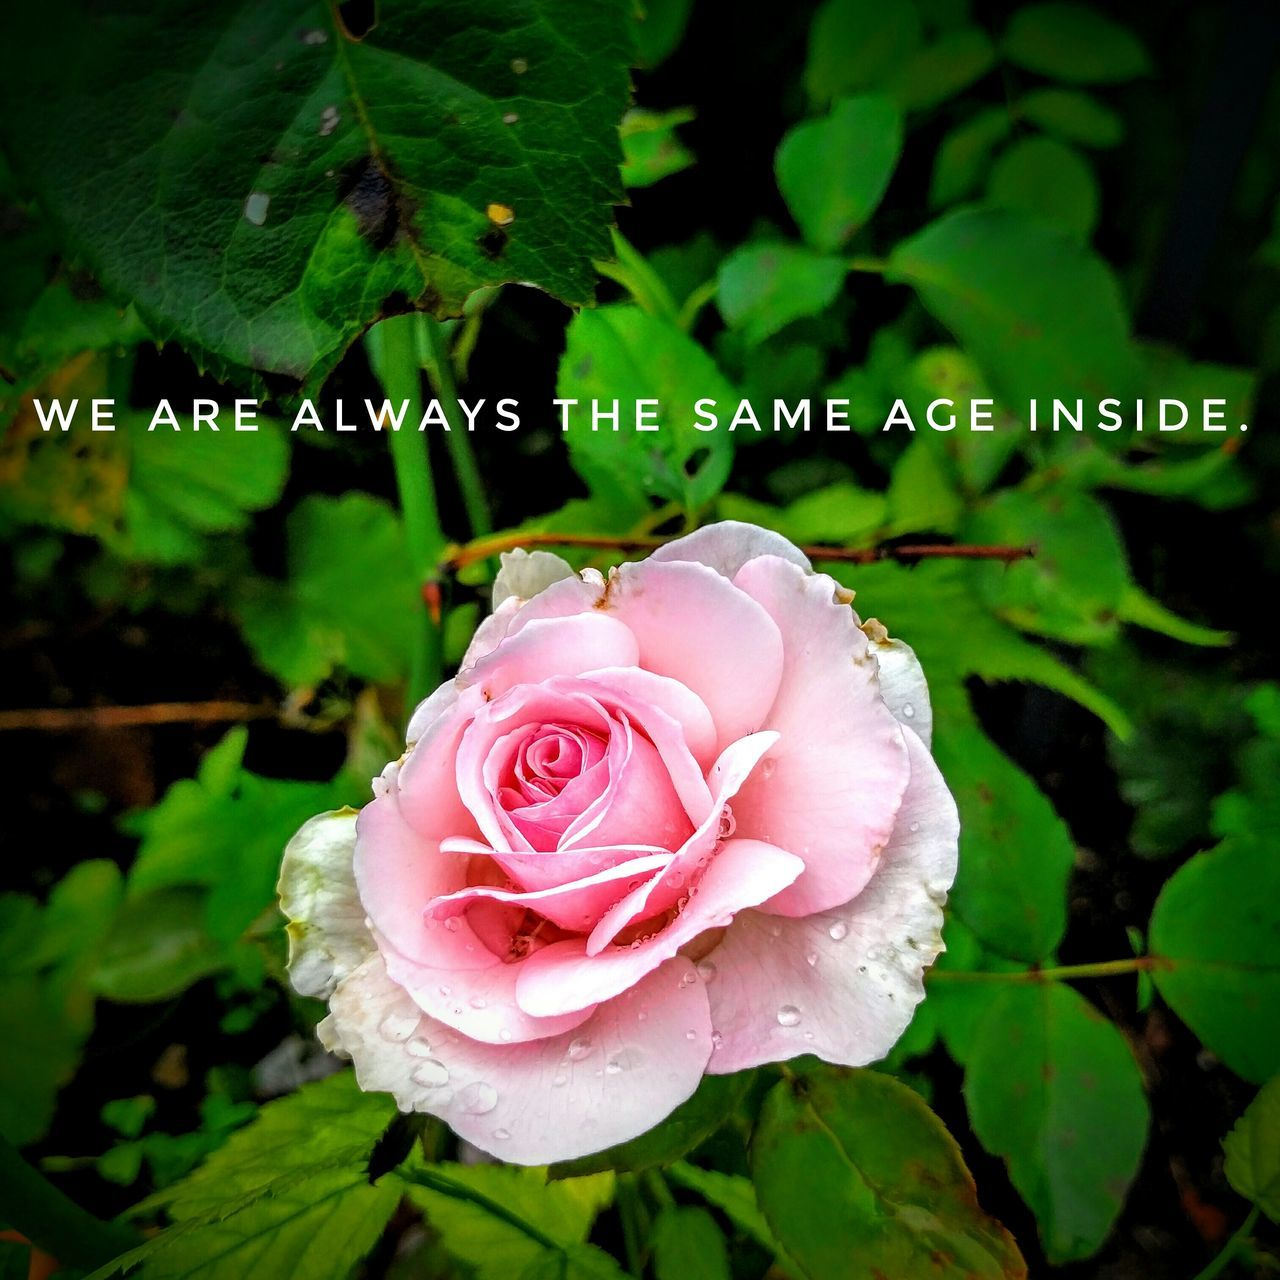 flower, petal, plant, drop, nature, growth, rose - flower, fragility, beauty in nature, leaf, green color, flower head, pink color, no people, freshness, close-up, water, raindrop, outdoors, day